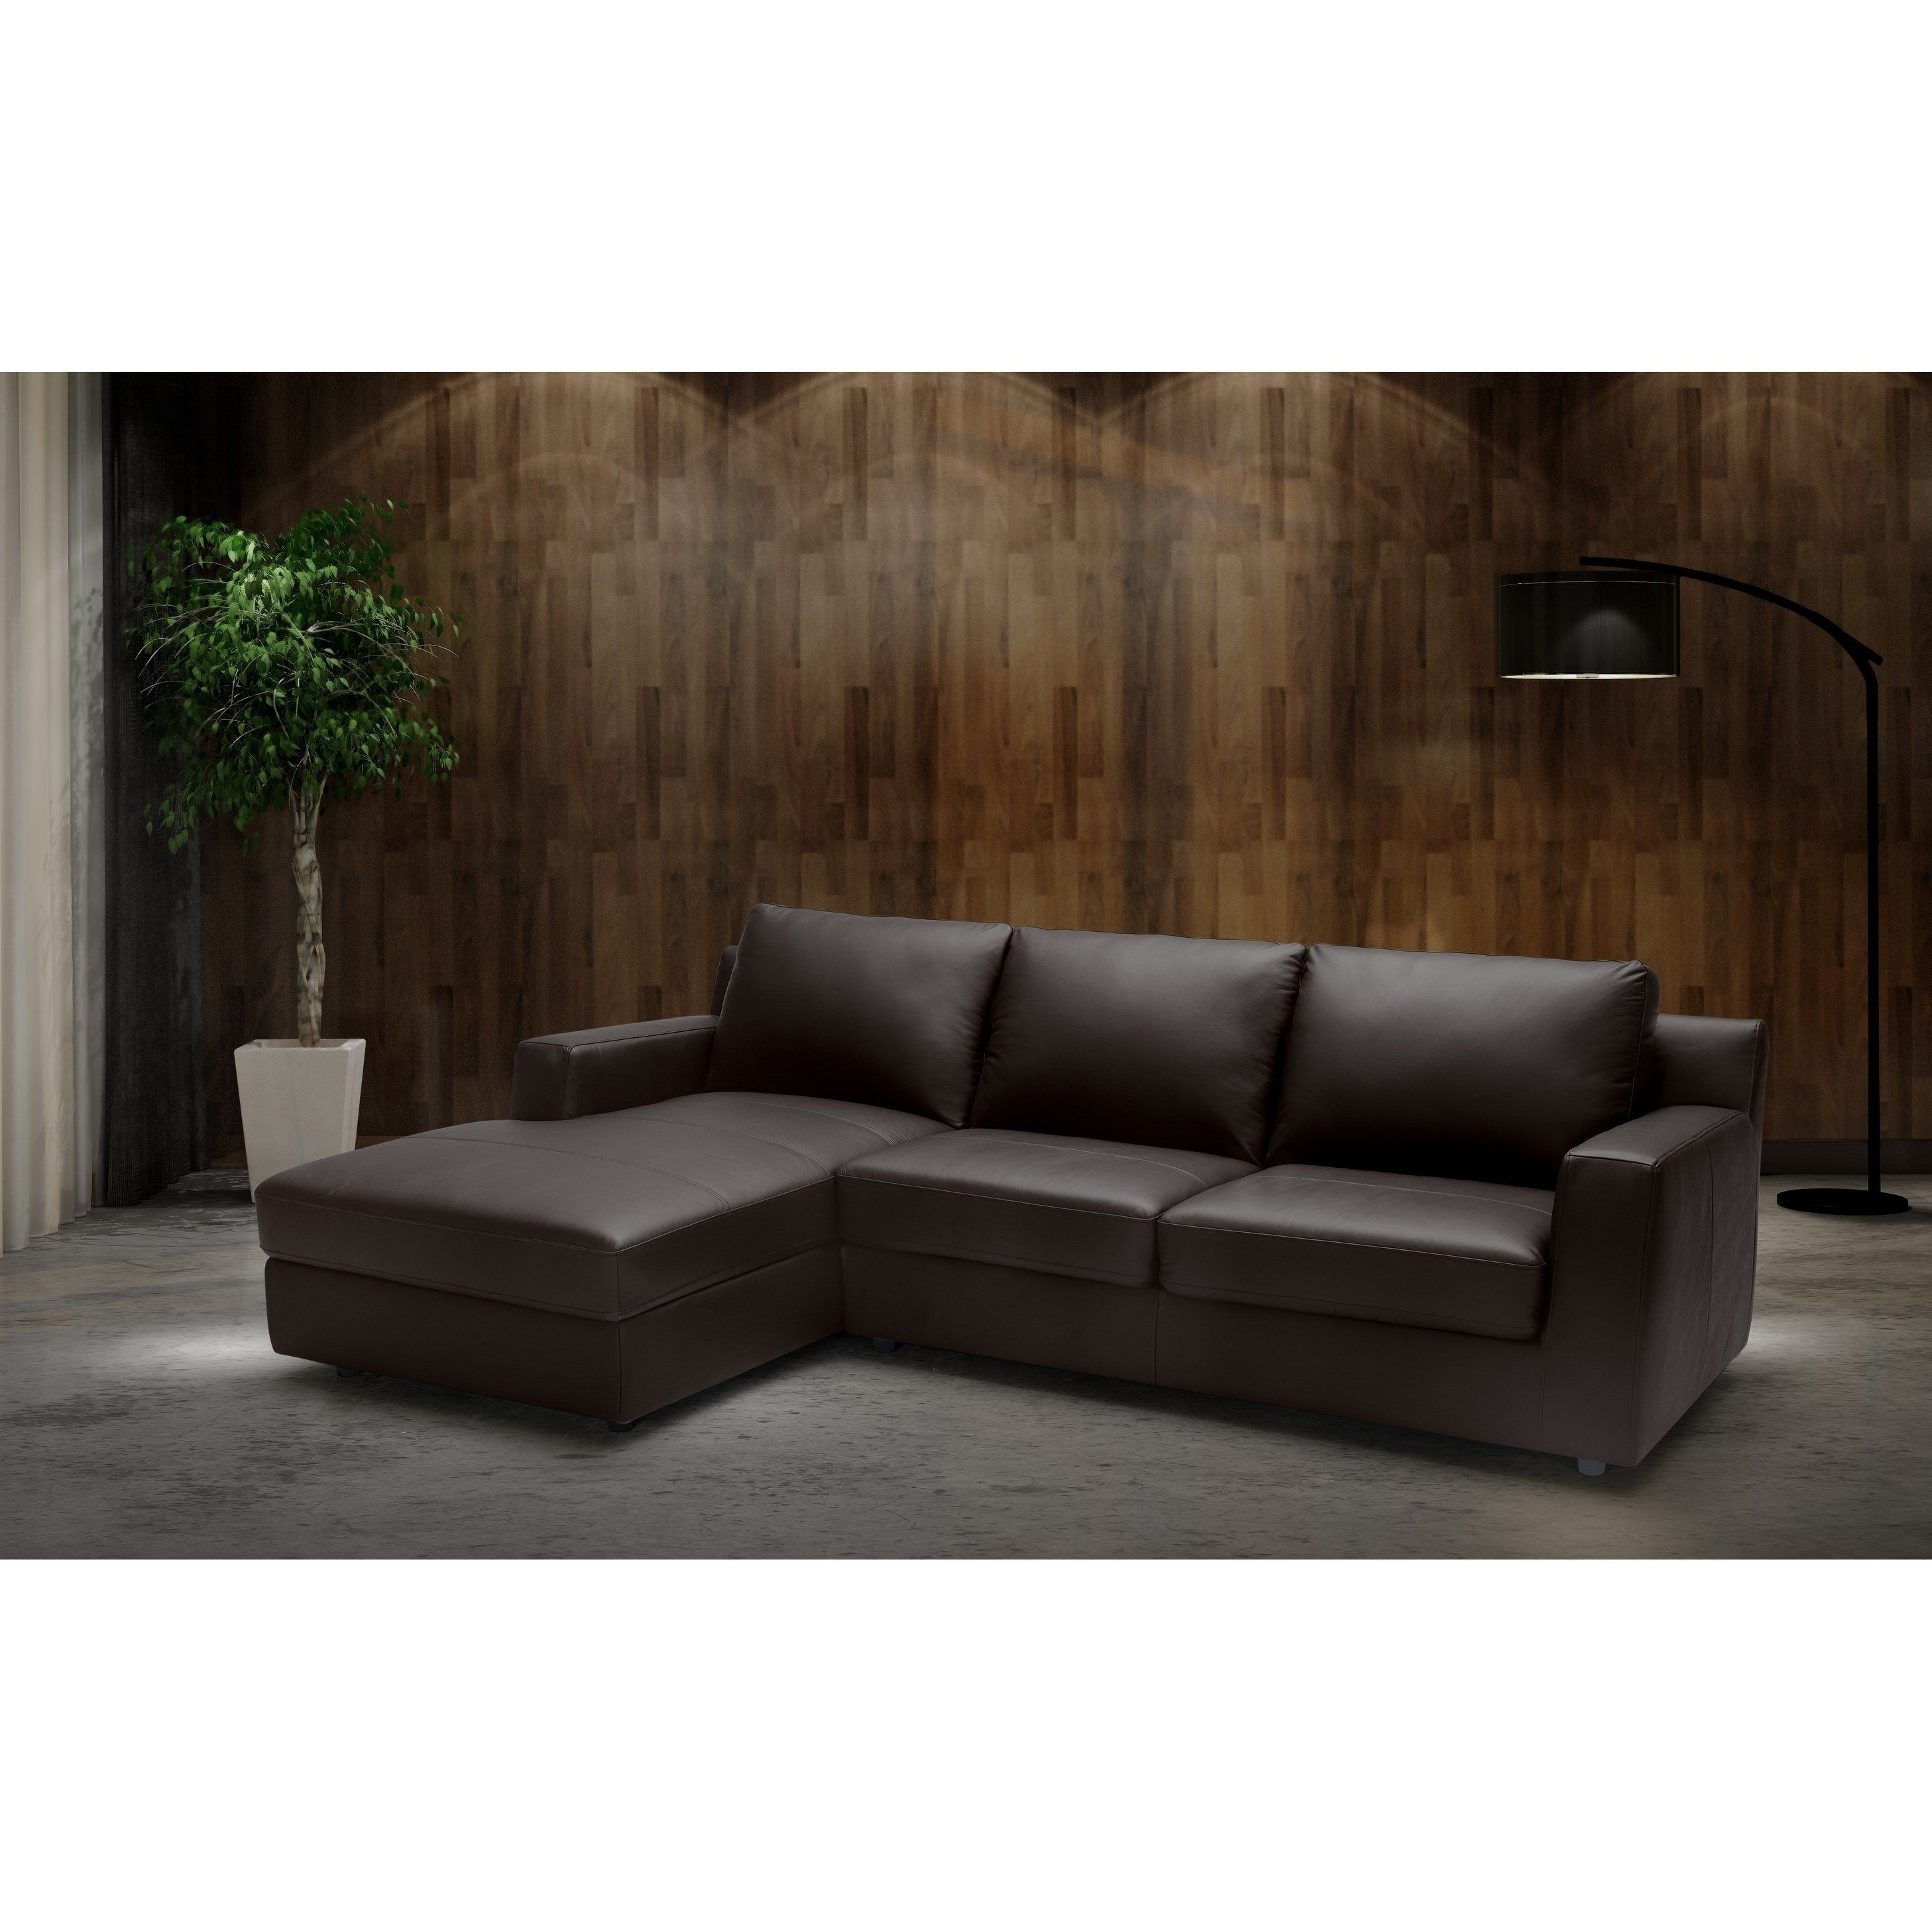 Best Taylor Lhf Chaise Brown Leather Sectional Sleeper 400 x 300